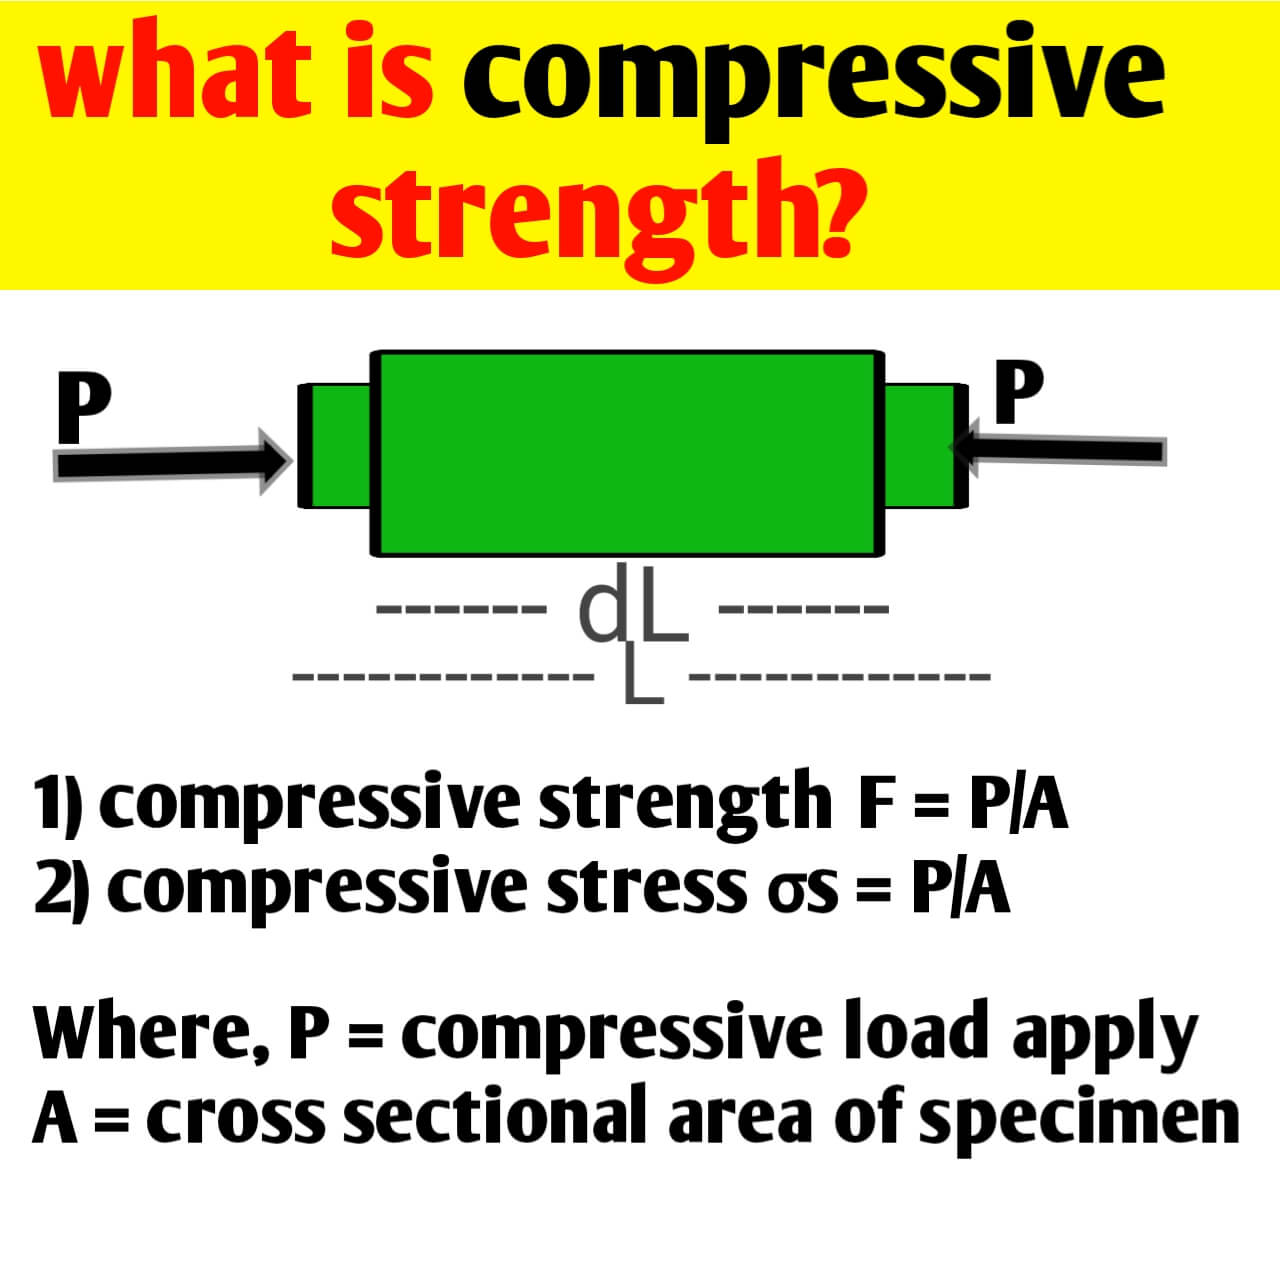 What is Compressive strength?